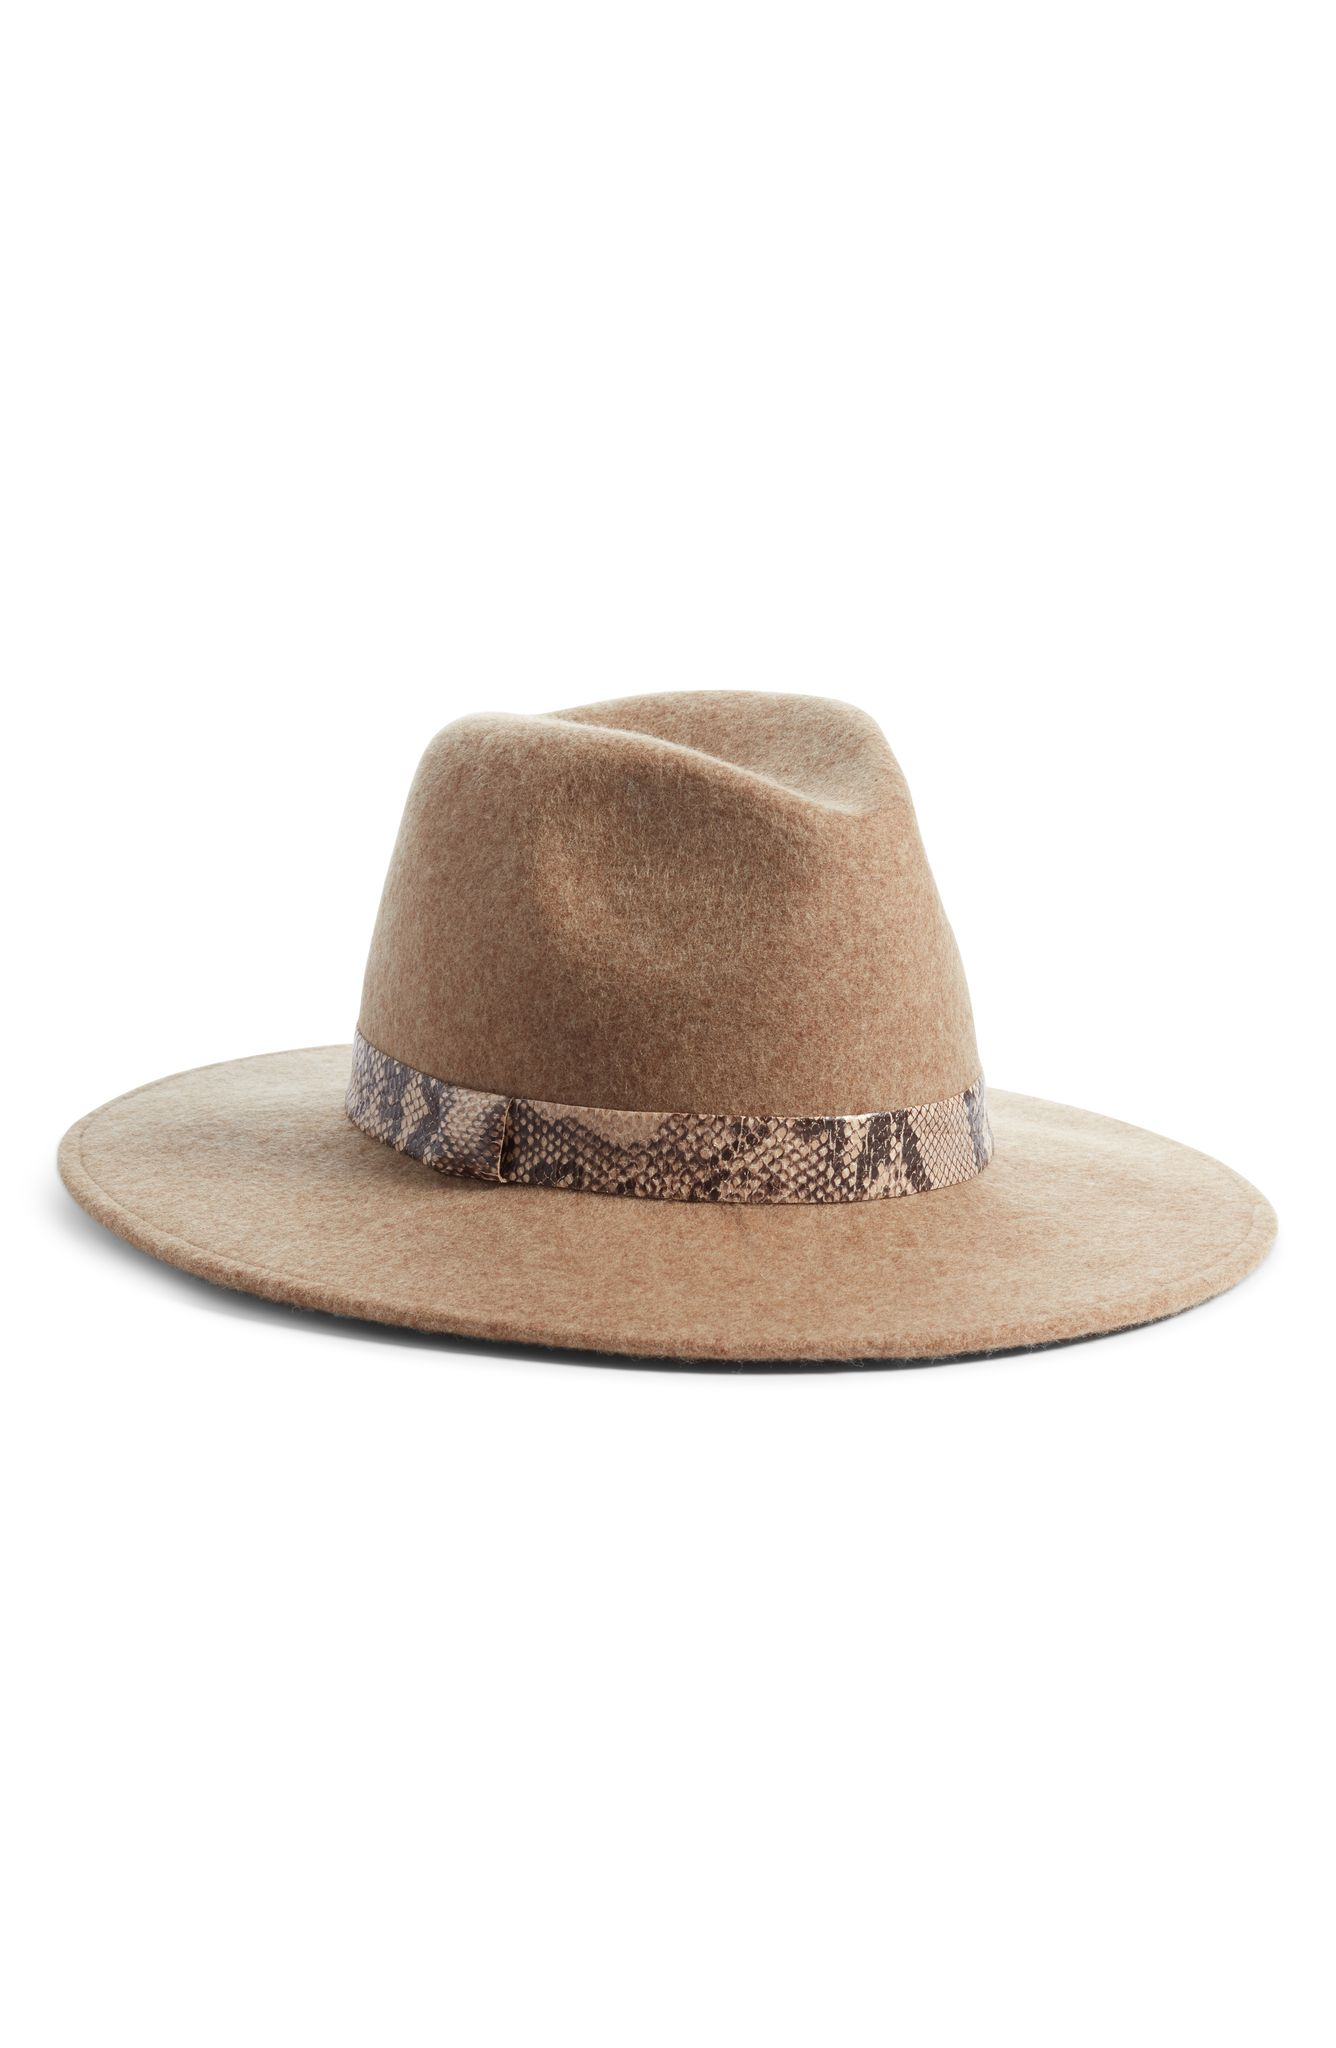 Treasure & Bond Wide Brim Panama Hat (normally $59): NOW $38.99 (Image: Nordstrom){ }